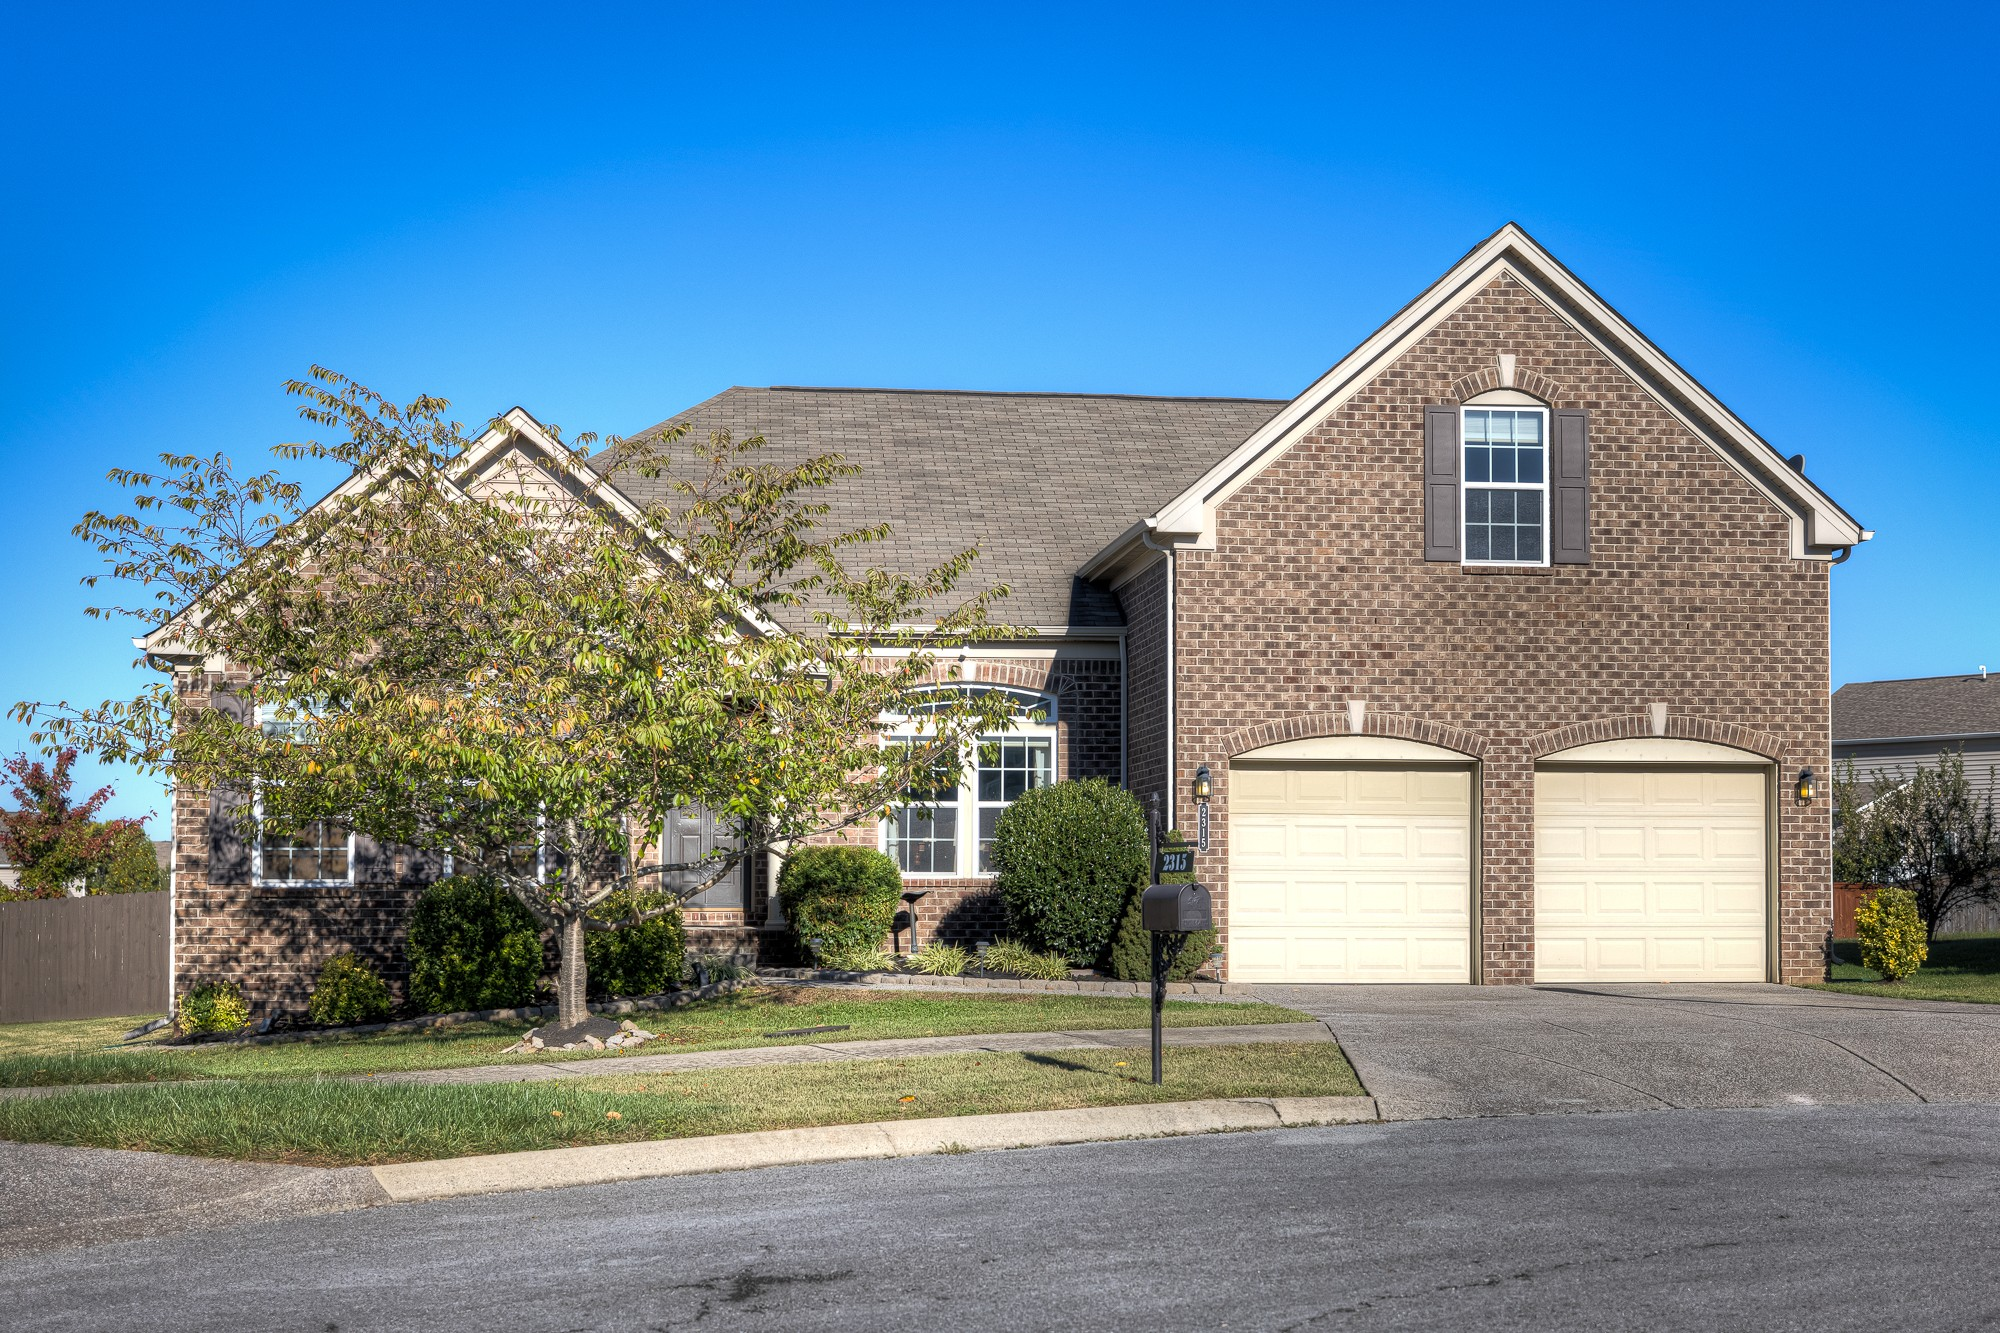 Come see this beautiful, 4BR home with loads of upgrades on a cul-de-sac lot in Nolensville's popular Silver Stream neighborhood! Enjoy the spacious, open floor plan with 3BR down, 4th BR up and a large bonus room! Relax or entertain guests in the sunroom overlooking the backyard w/wood privacy fence and double-patio! This home is on a premium lot backing to common area and zoned for Williamson County's acclaimed schools. Ask about the furniture - much of it is available for sale.